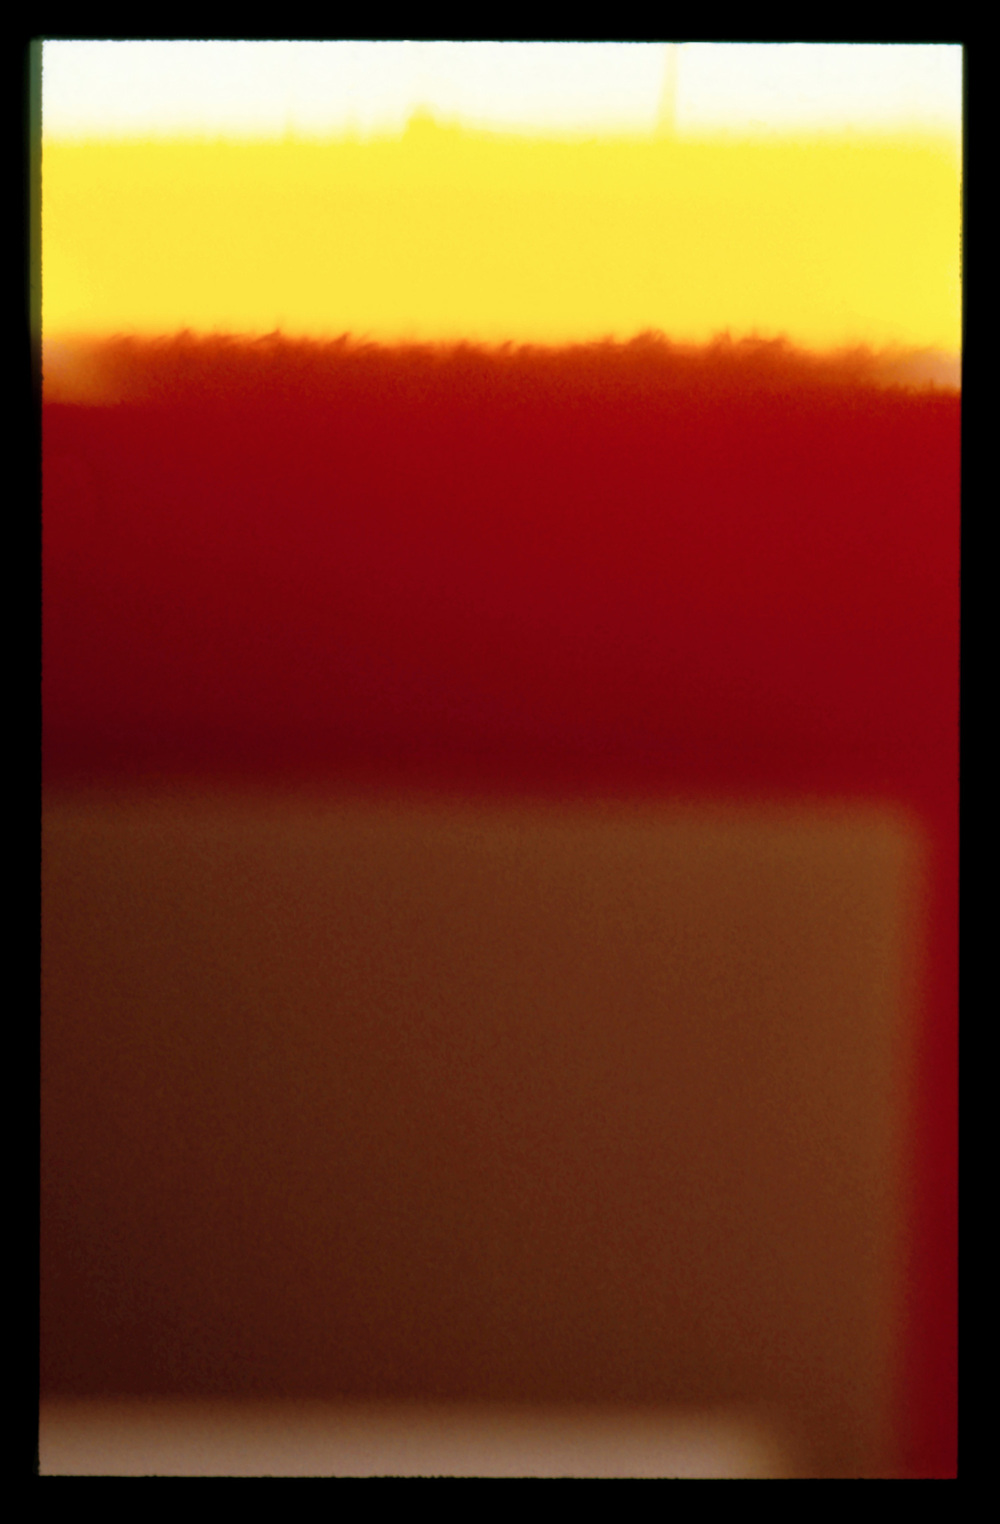 Endings (Rothko died today) - Kodachrome 64, No.21. 26/02/1970